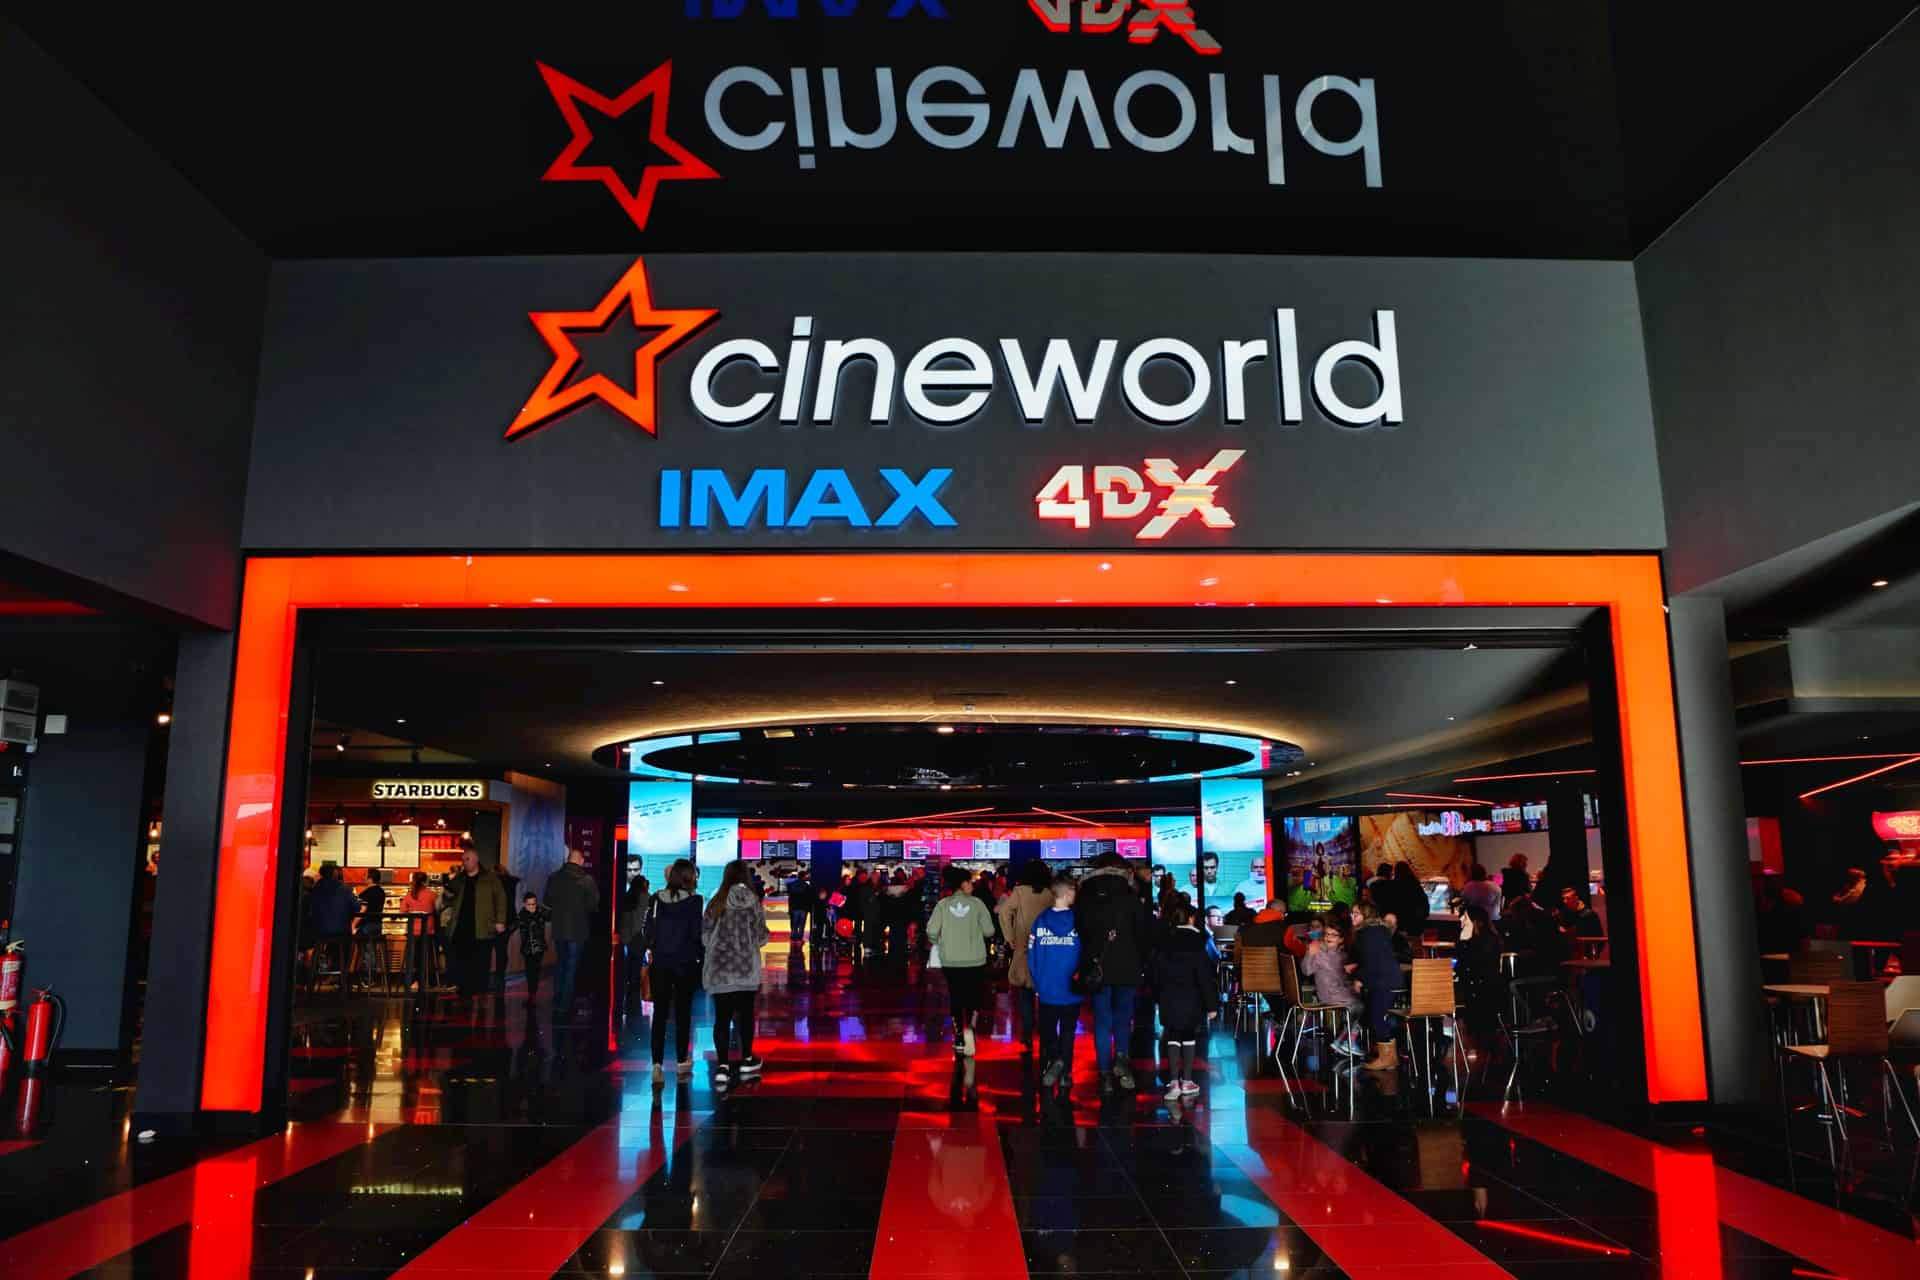 Cineworld Food Prices